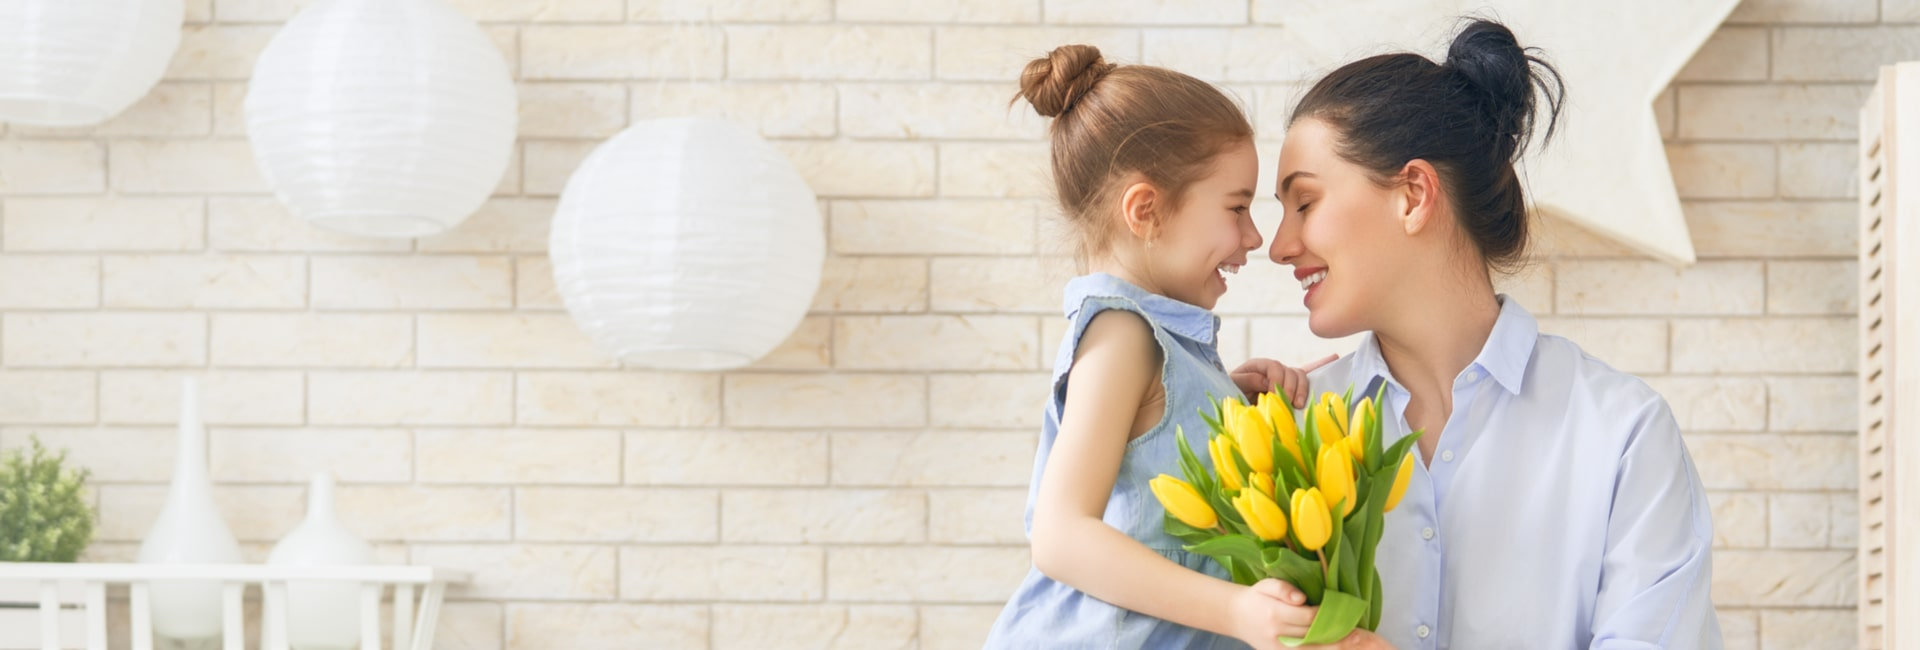 Cheap Flights for Mothers Day, Mothers Day Airfare Deals